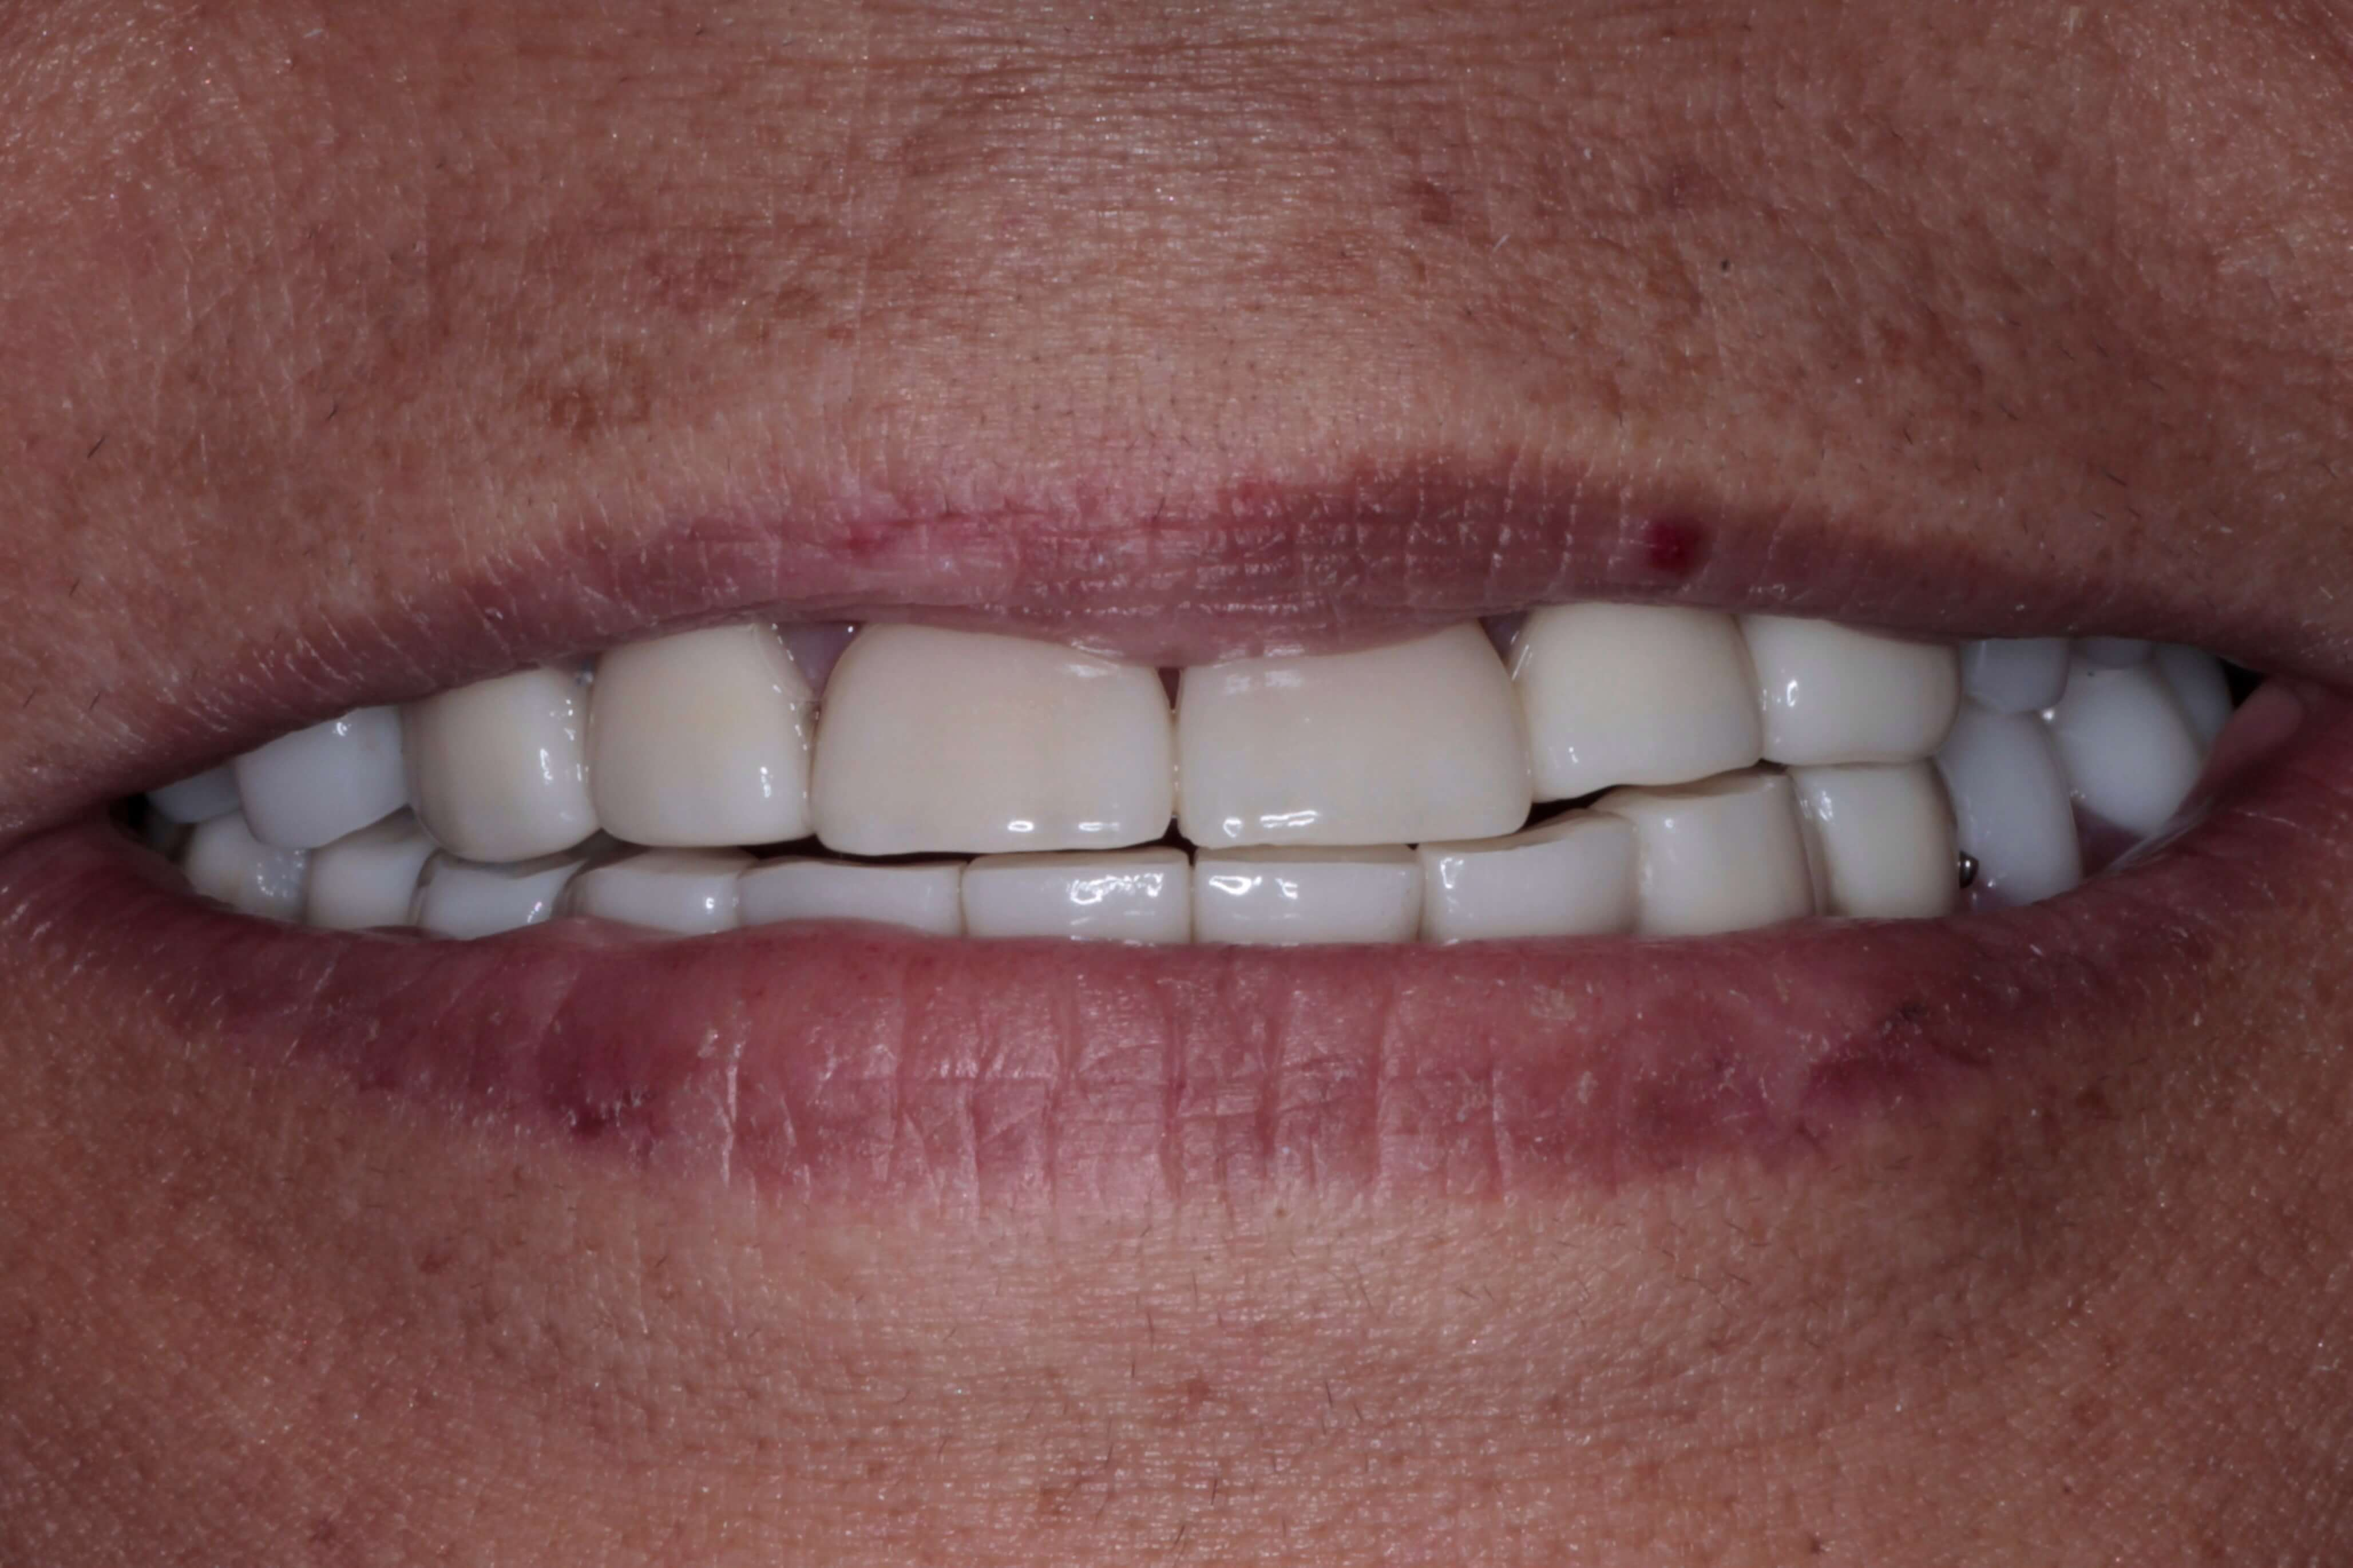 New crowns and upper and lower partial dentures